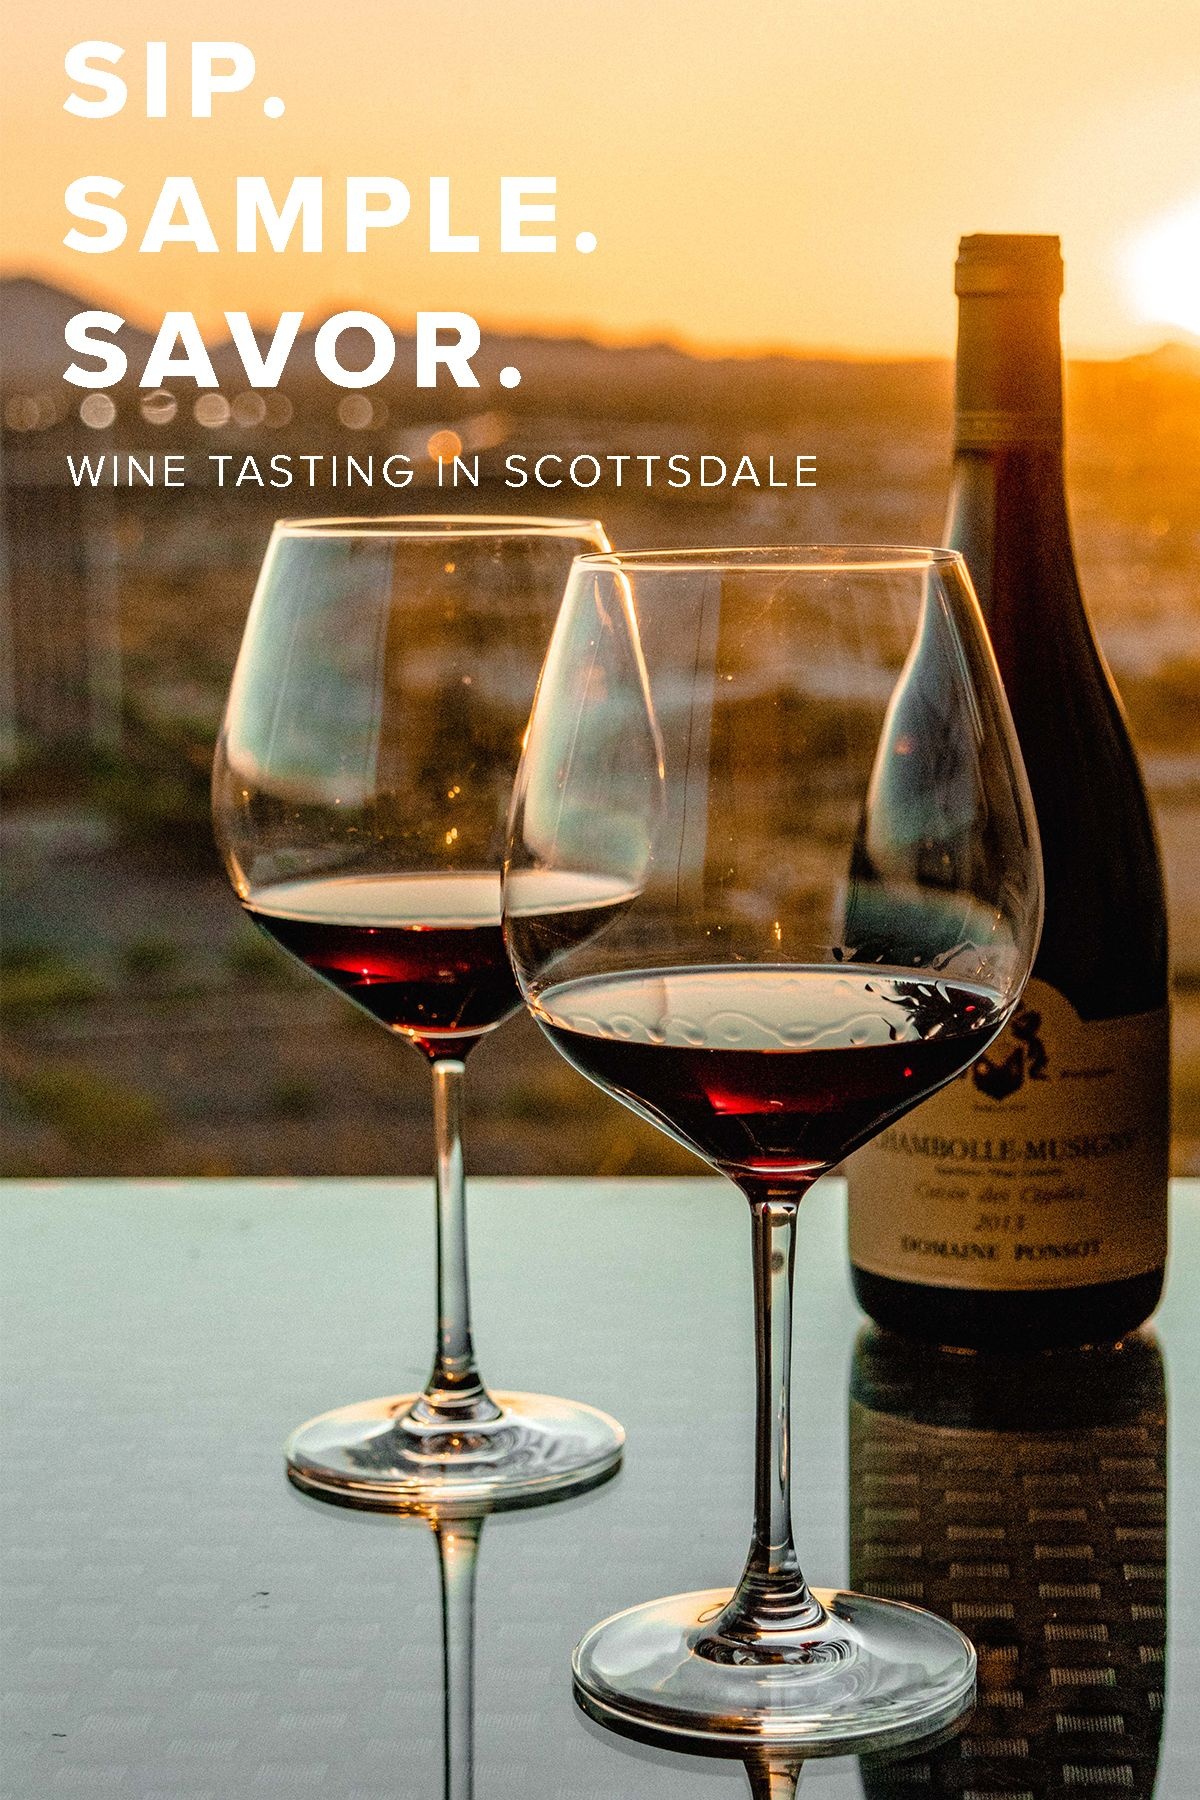 Top 10 Places for Wine in Scottsdale | Scottsdale, Travel ...